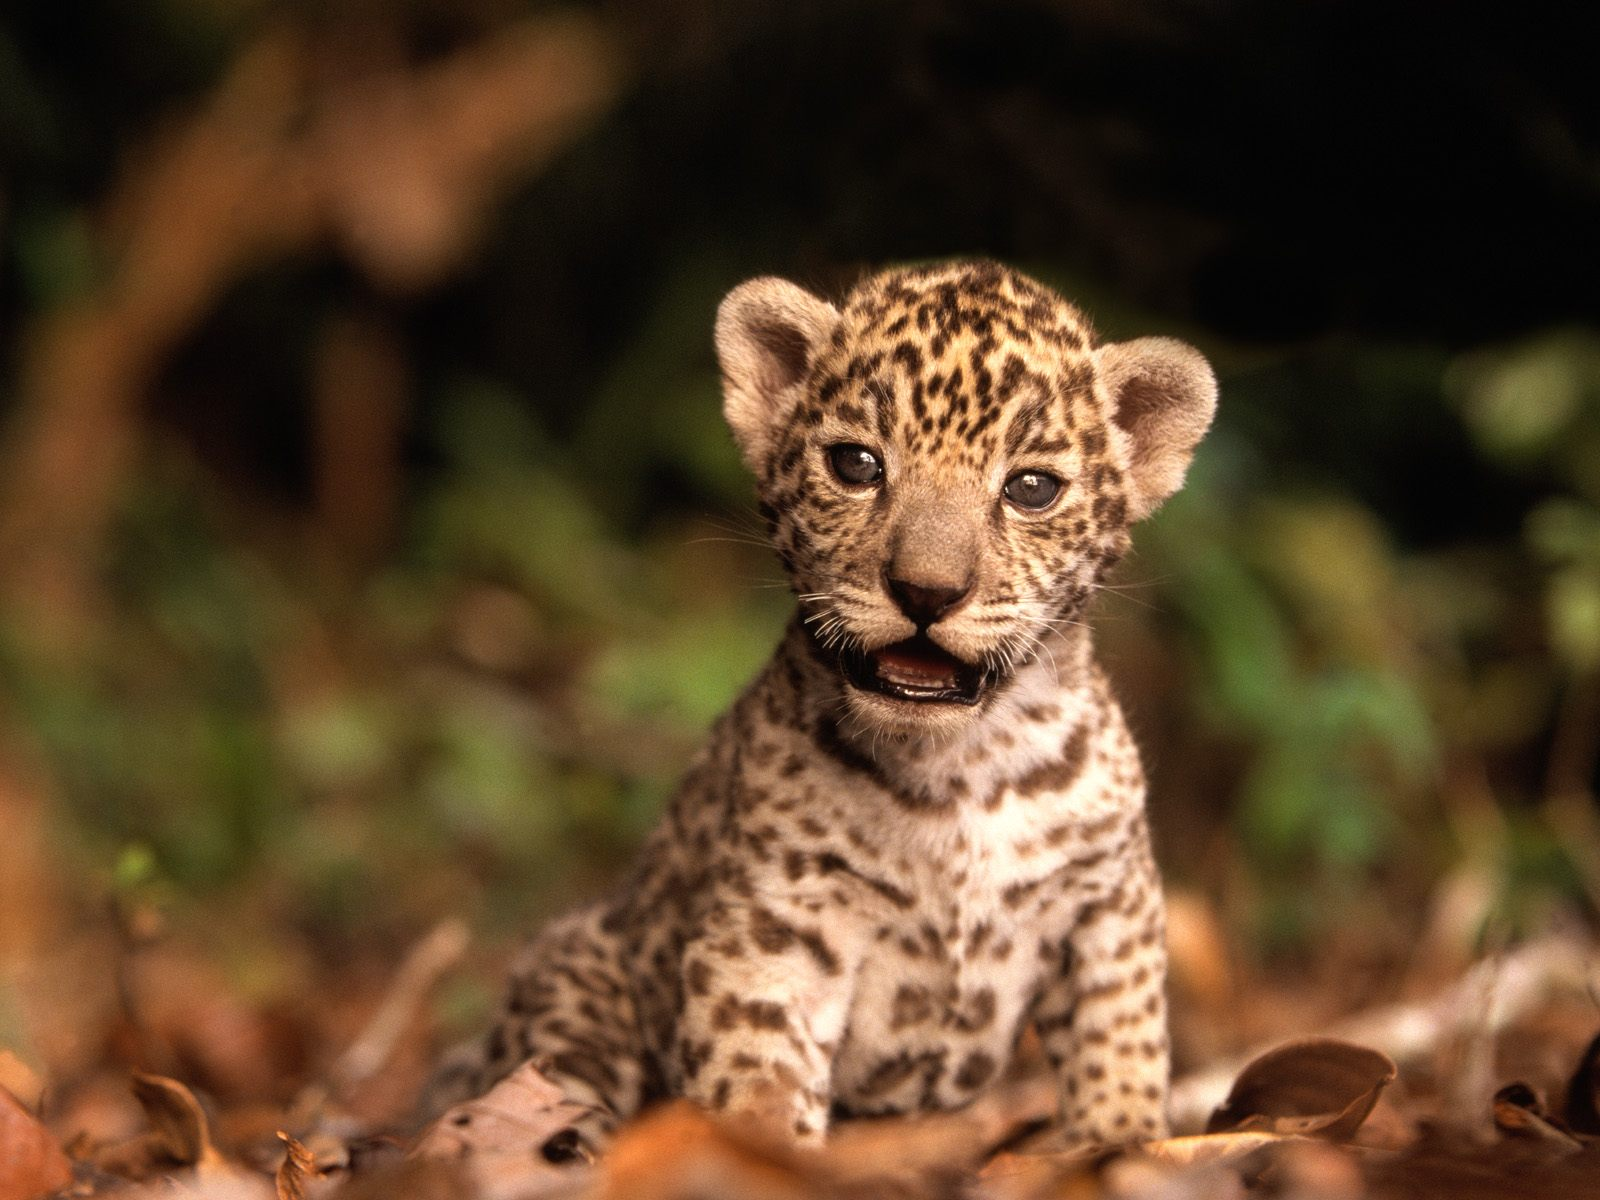 Cute Small Baby Jaguar 3694.72 Kb